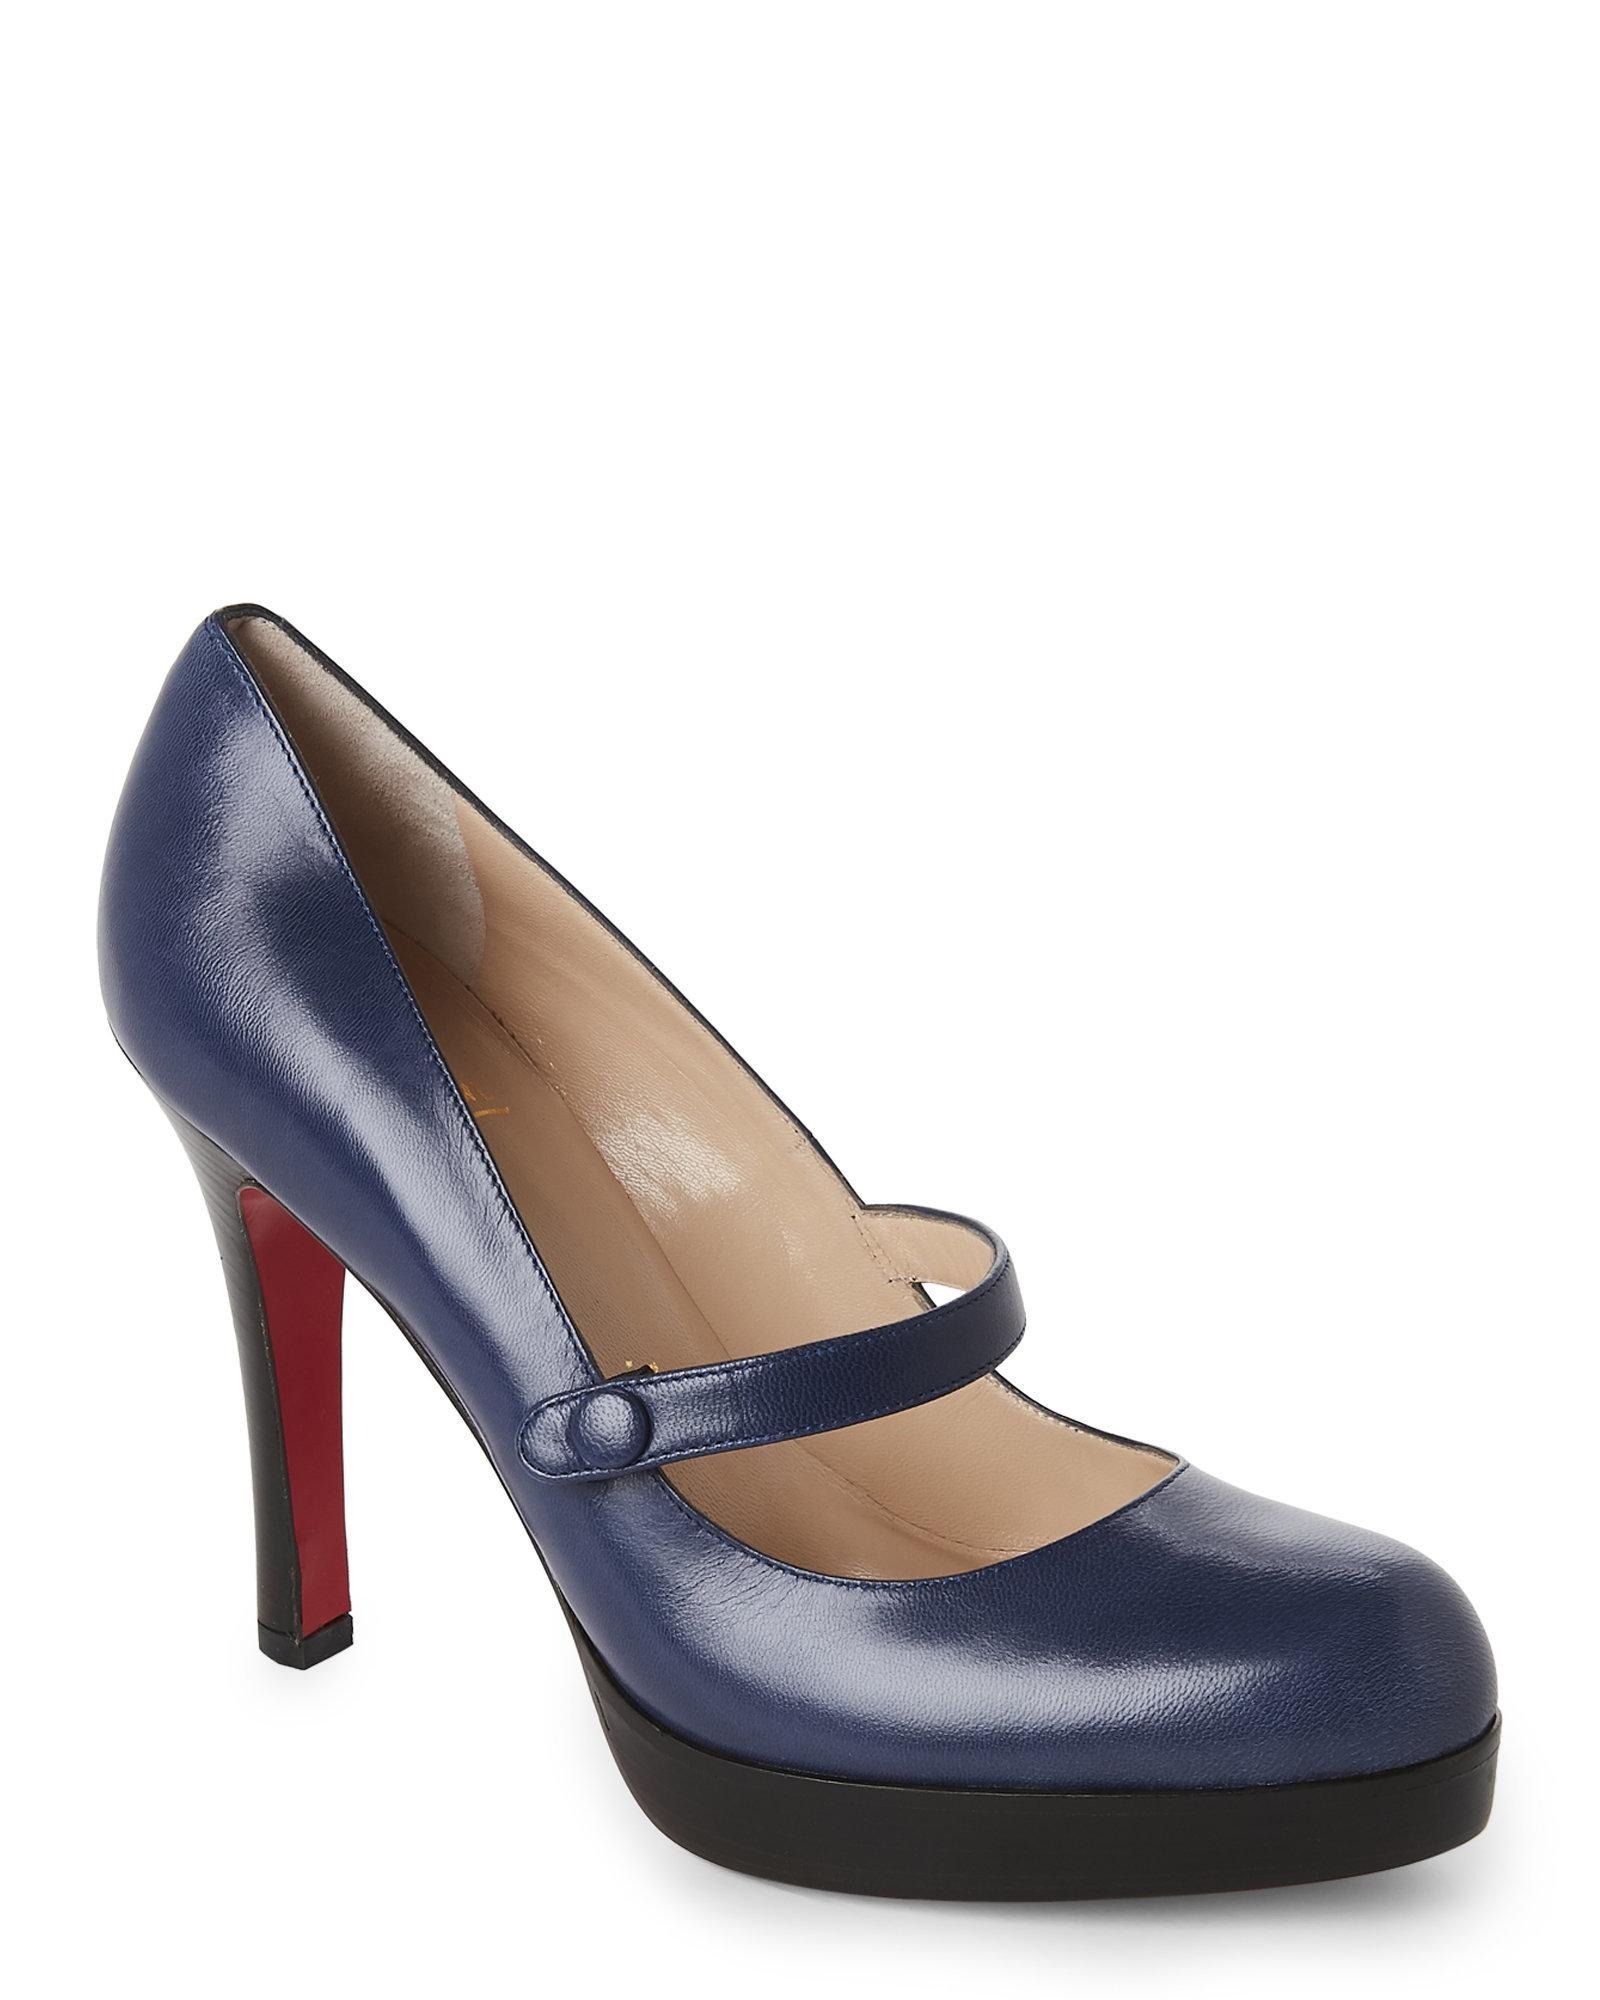 christian louboutin mary jane platform pump